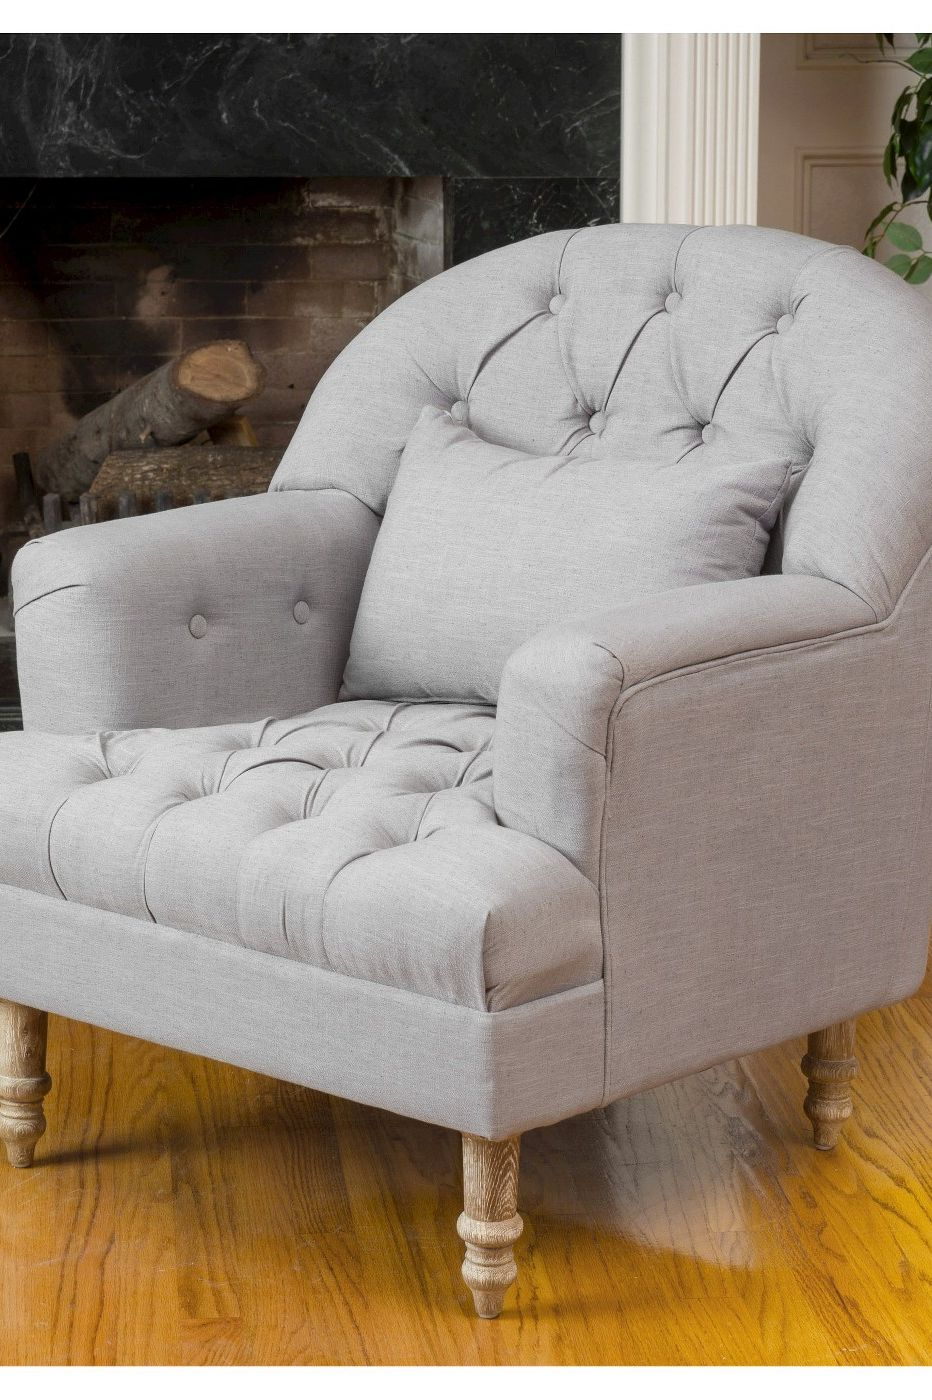 cozy chairs - christopher knight anastasia tufted chair